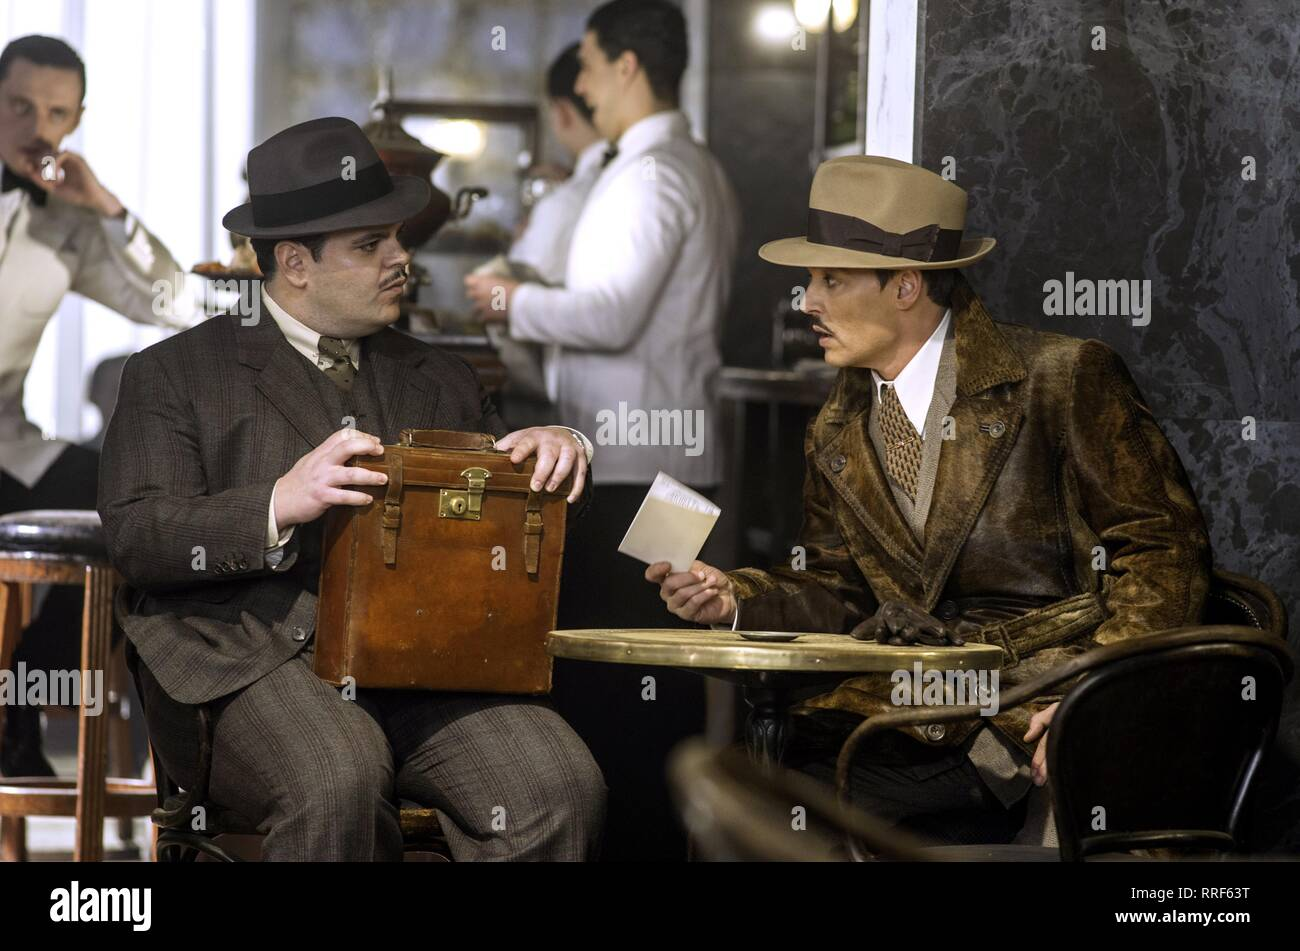 MURDER ON THE ORIENT EXPRESS, JOSH GAD , JOHNNY DEPP, 2017 - Stock Image